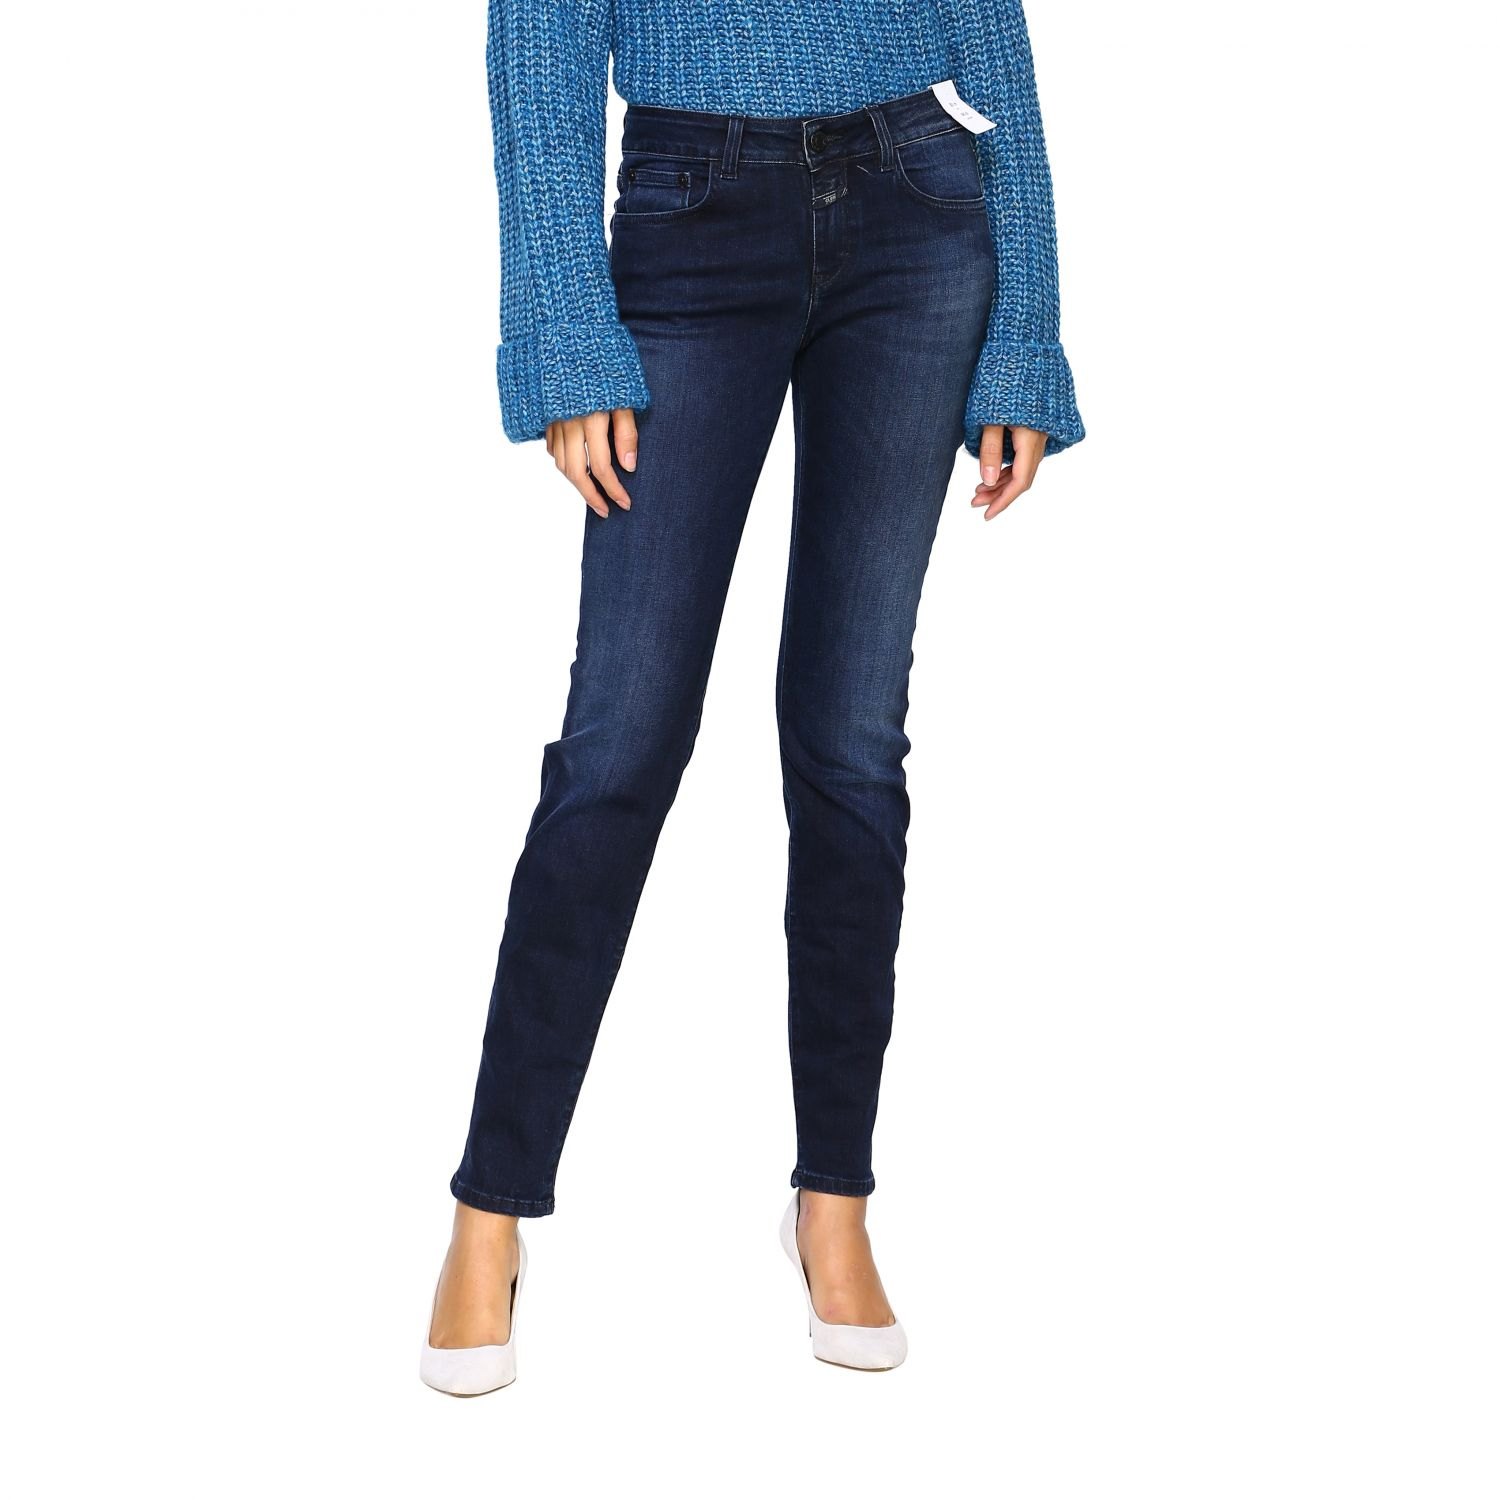 Jeans Closed: Jeans donna Closed blue 1